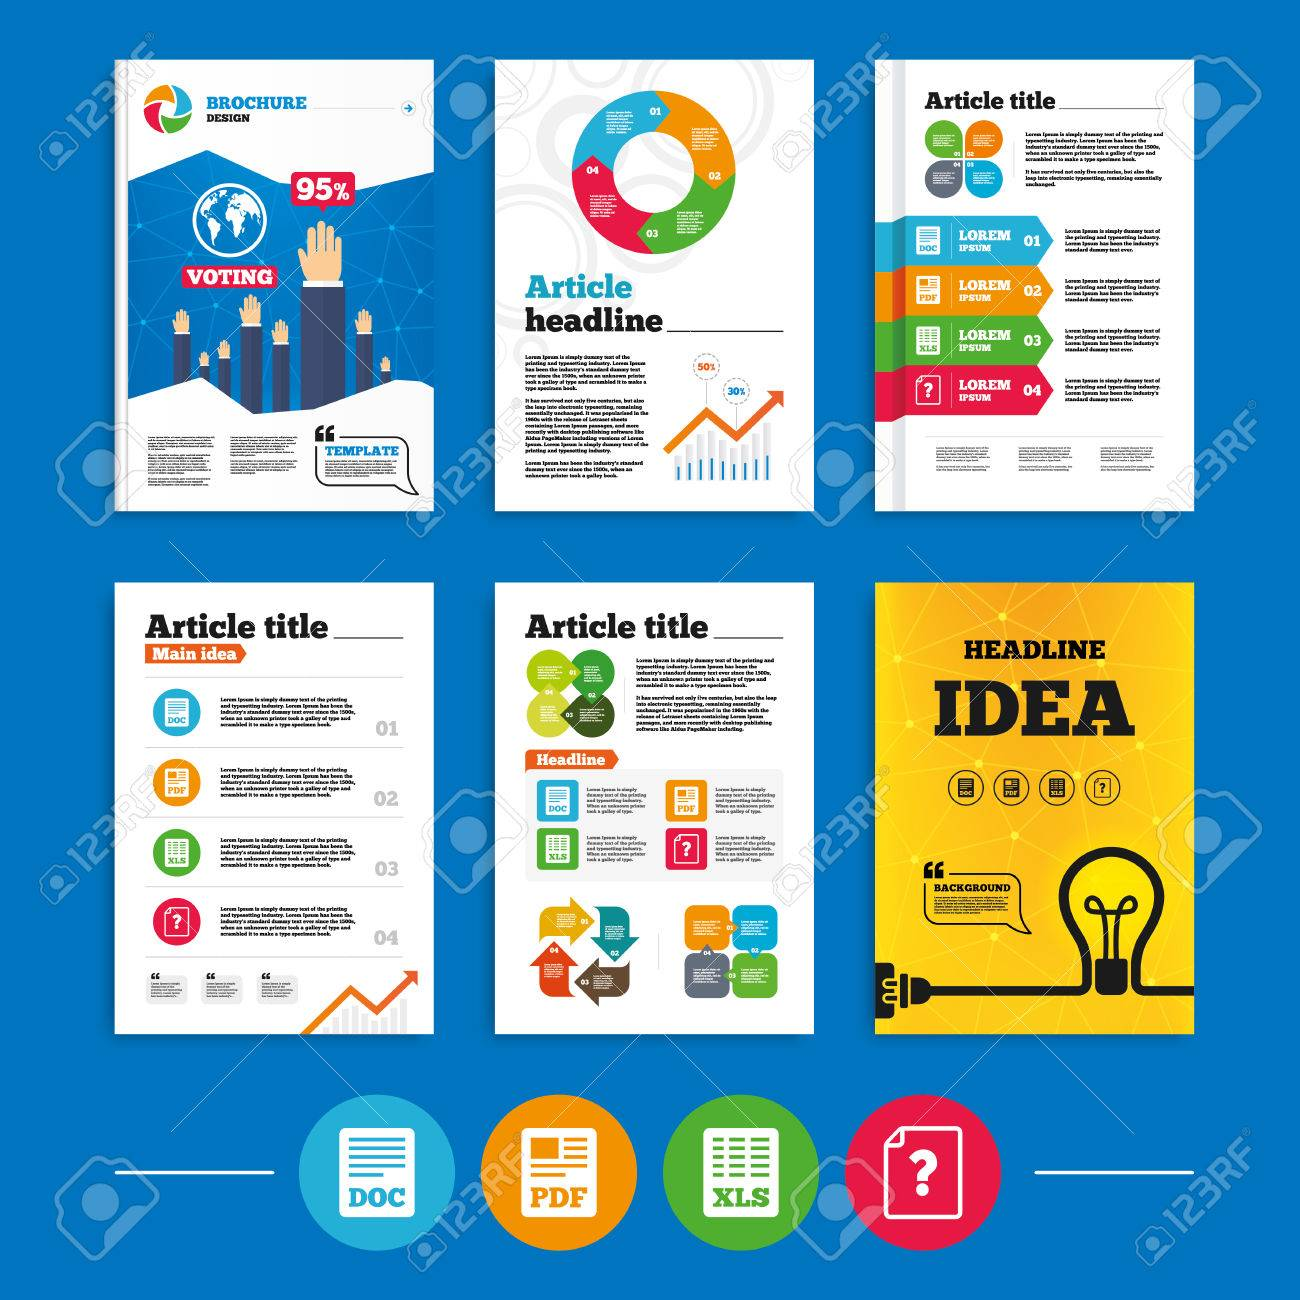 brochure or flyers design file document and question icons